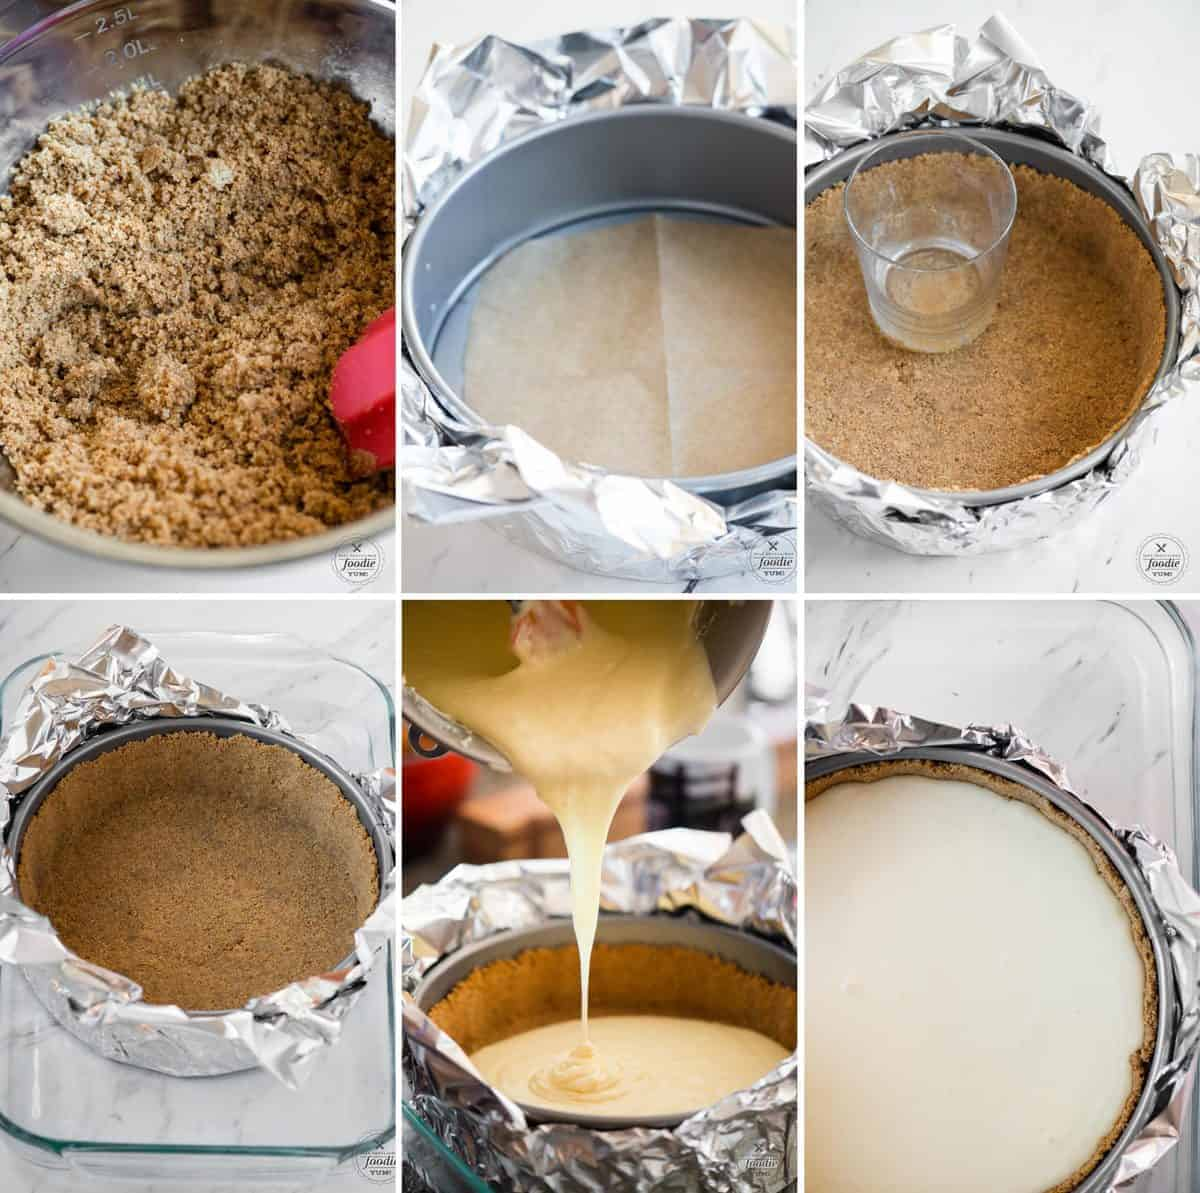 step by step process photos for how to make homemade cheesecake